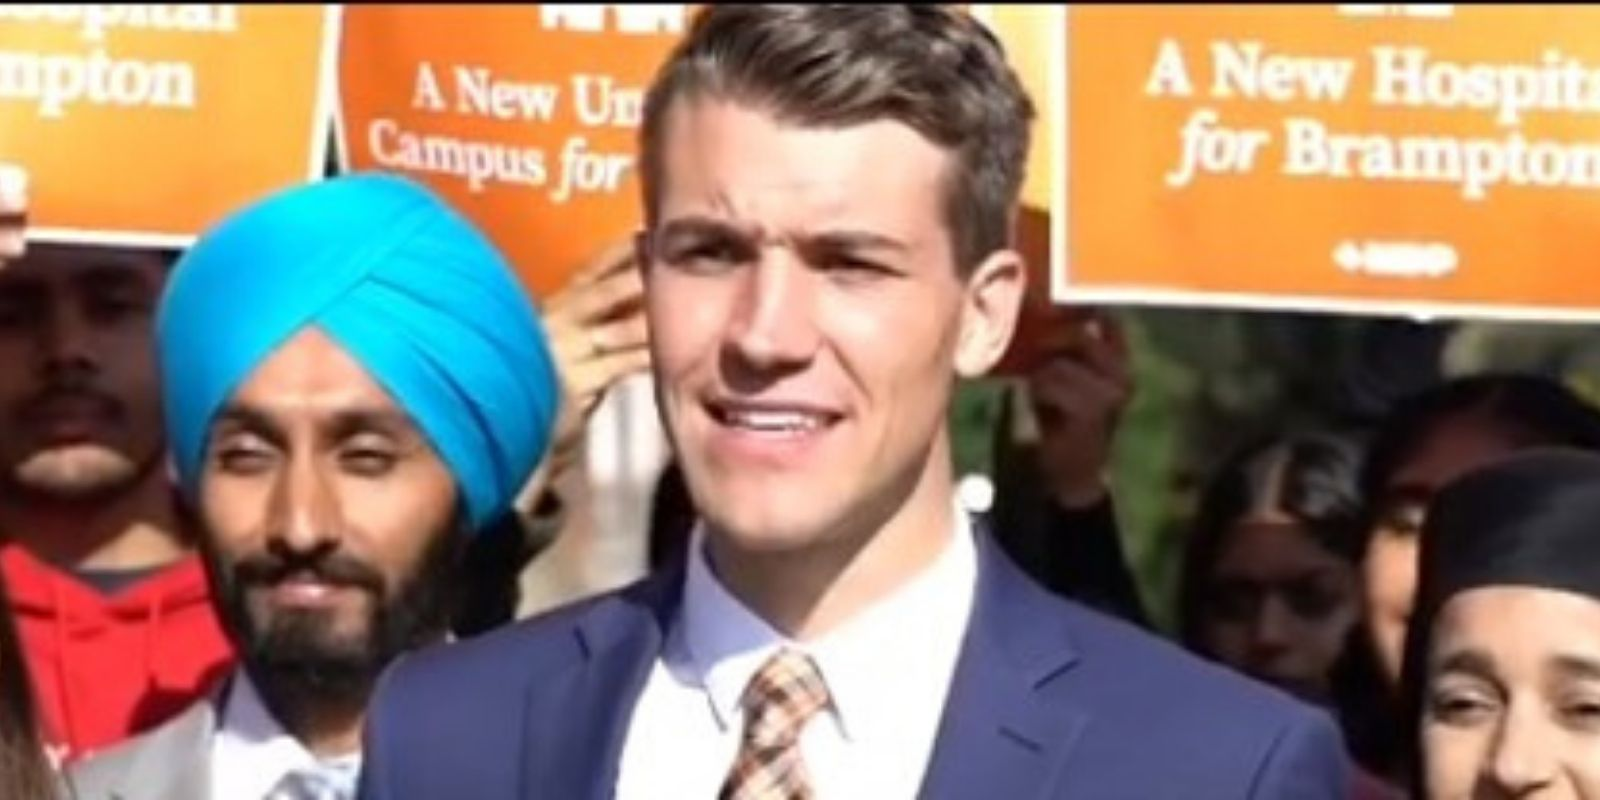 Brampton NDP candidate exposed for shaming sex trafficking victim